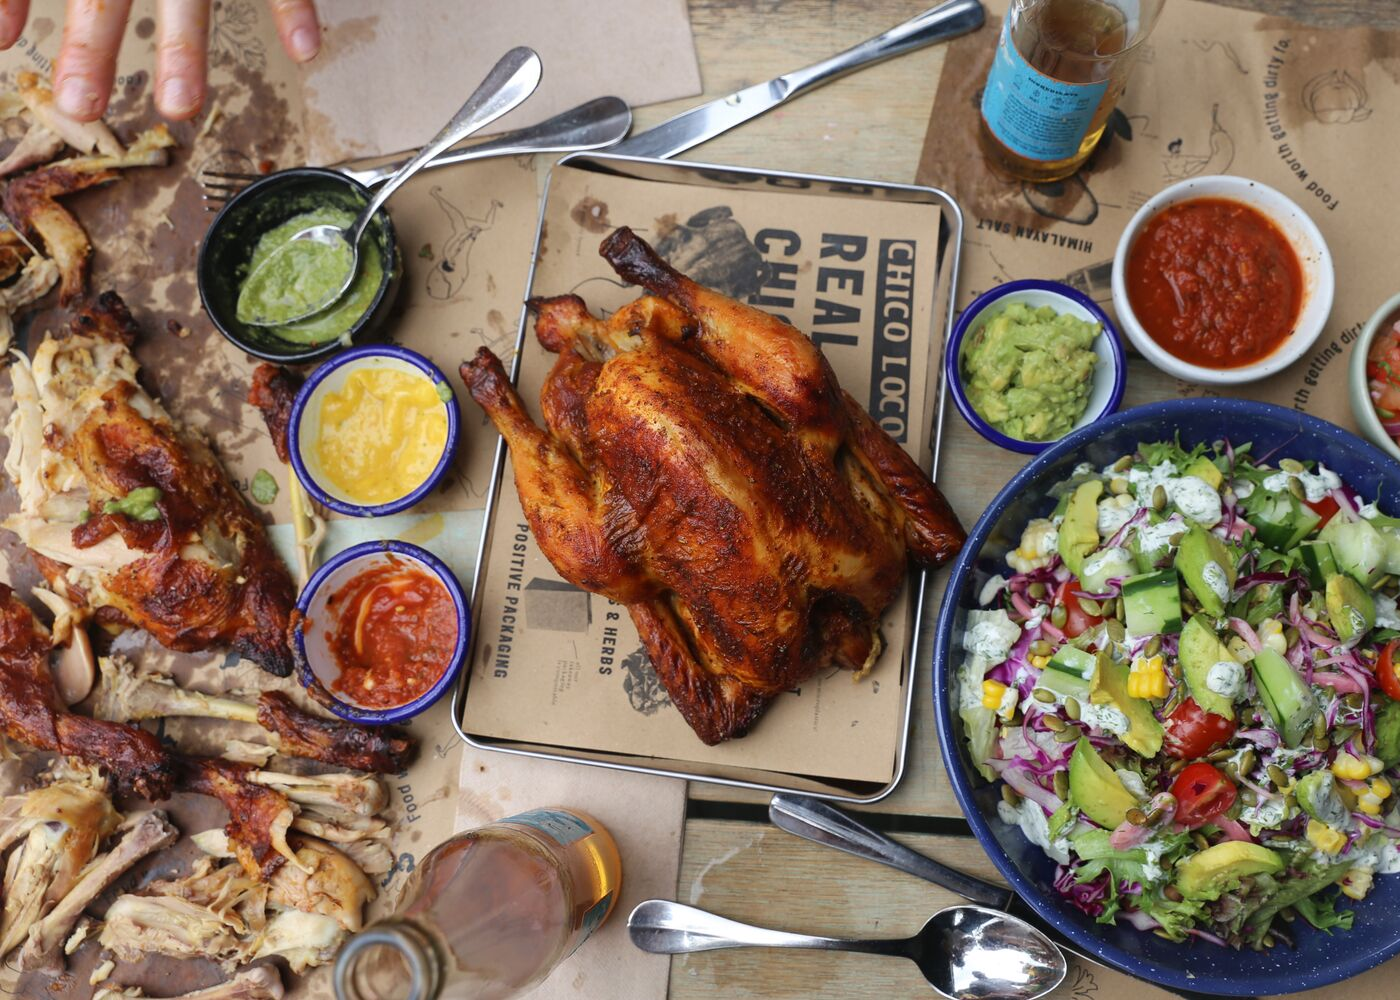 Chico Loco has Mexican spit-roasted chicken